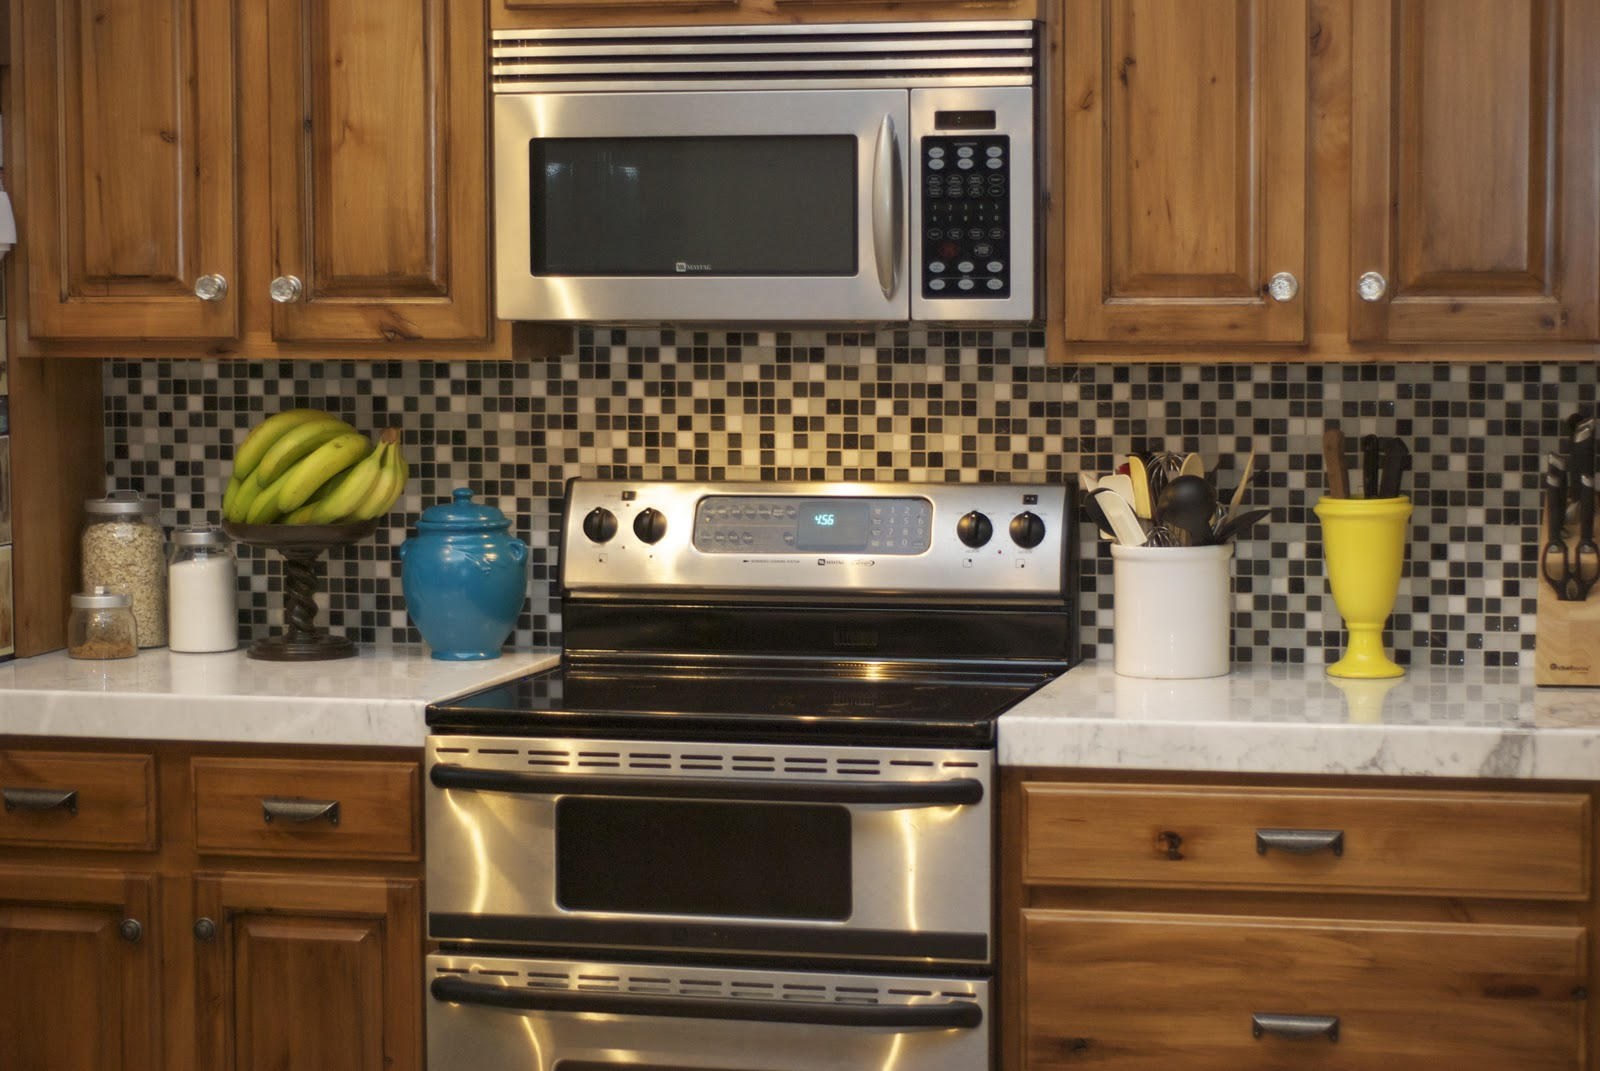 A pina colada backsplash ideas Kitchen backsplash ideas pictures 2010